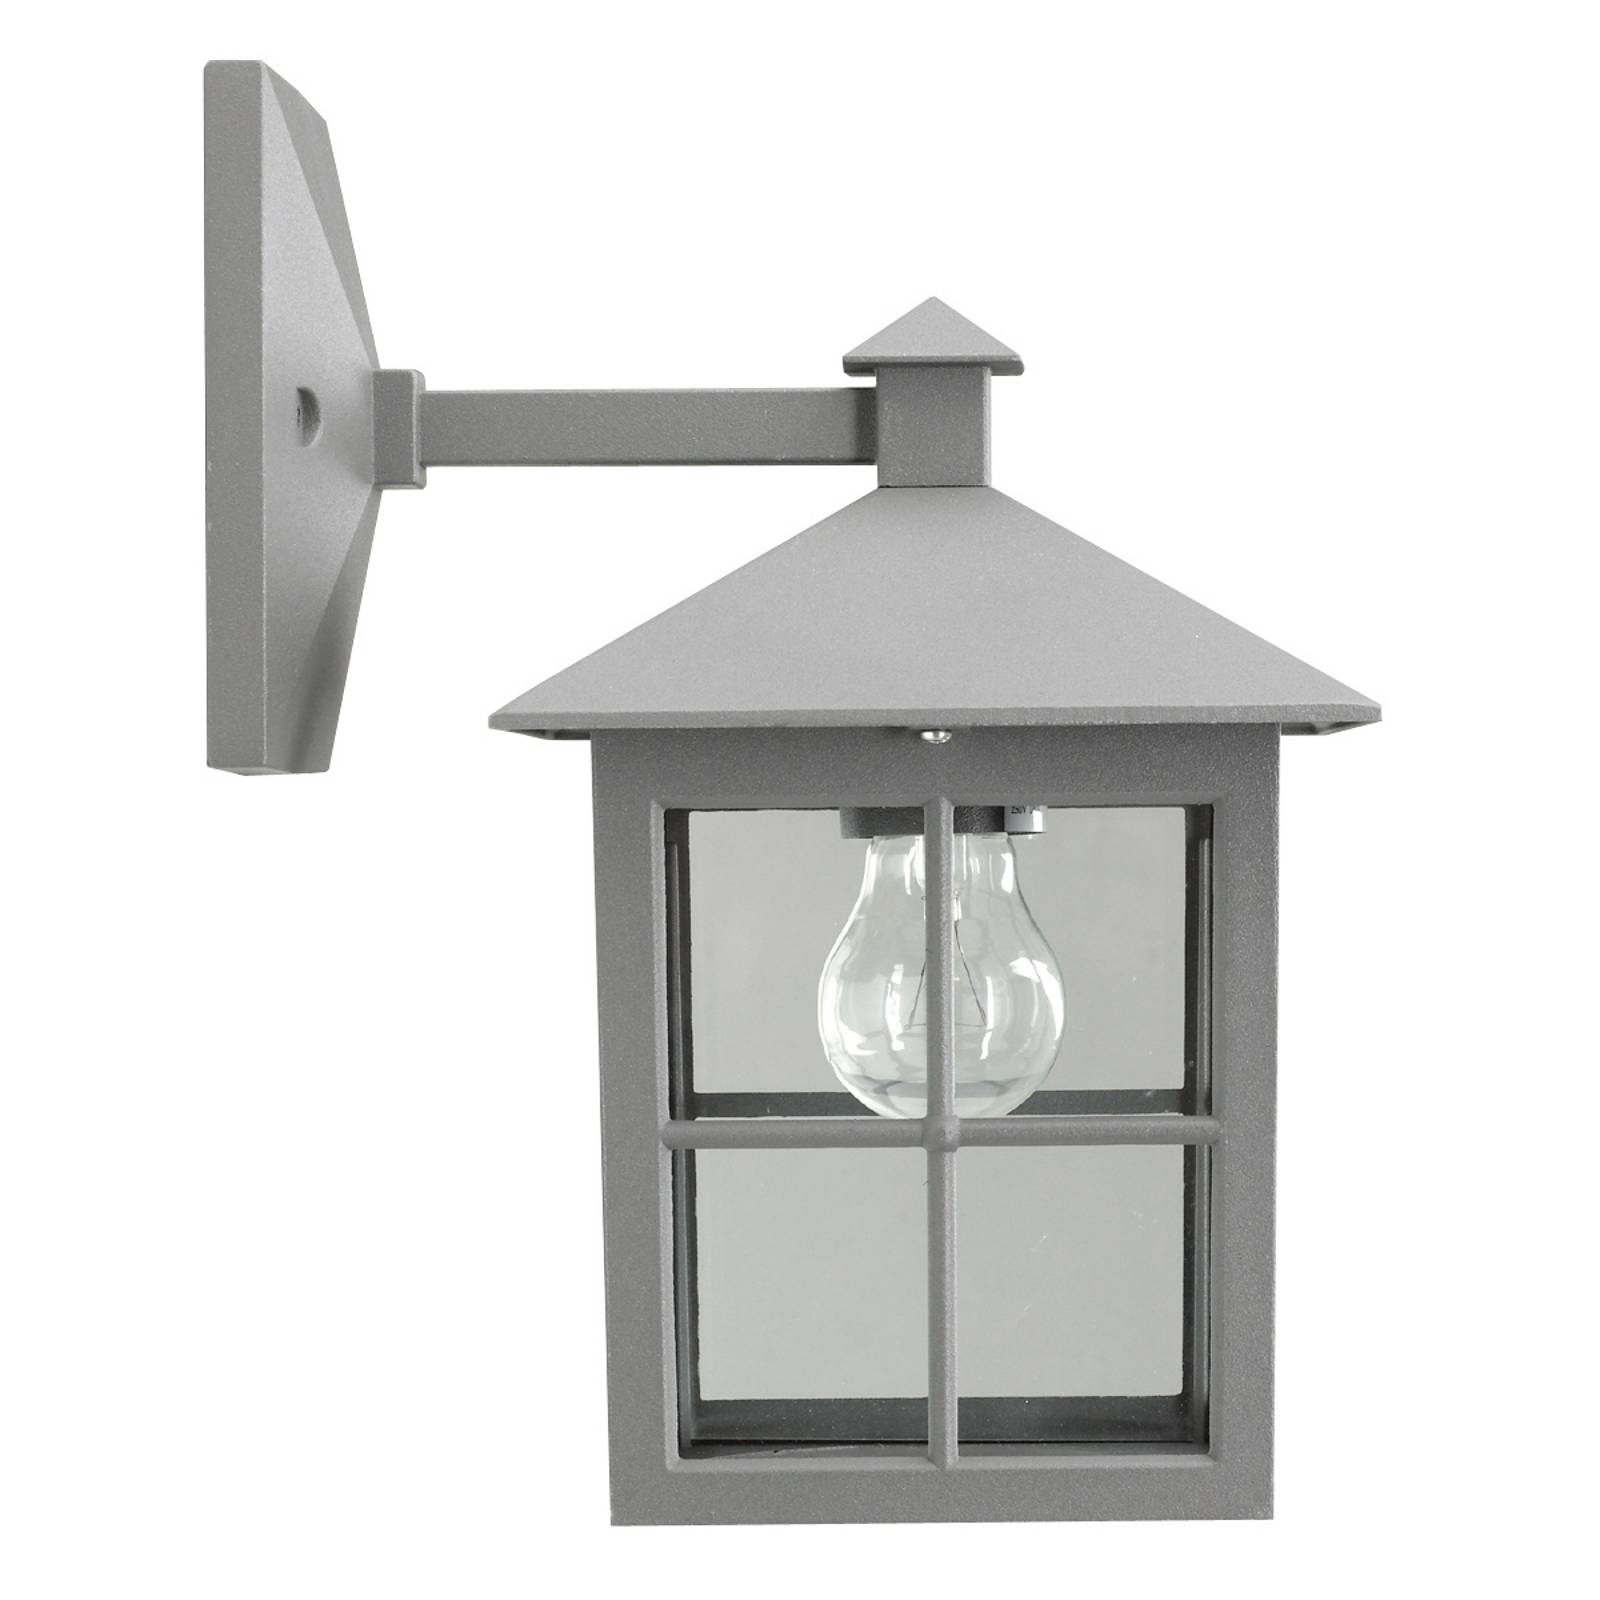 Outdoor wall light Arlano from K. S. Verlichting